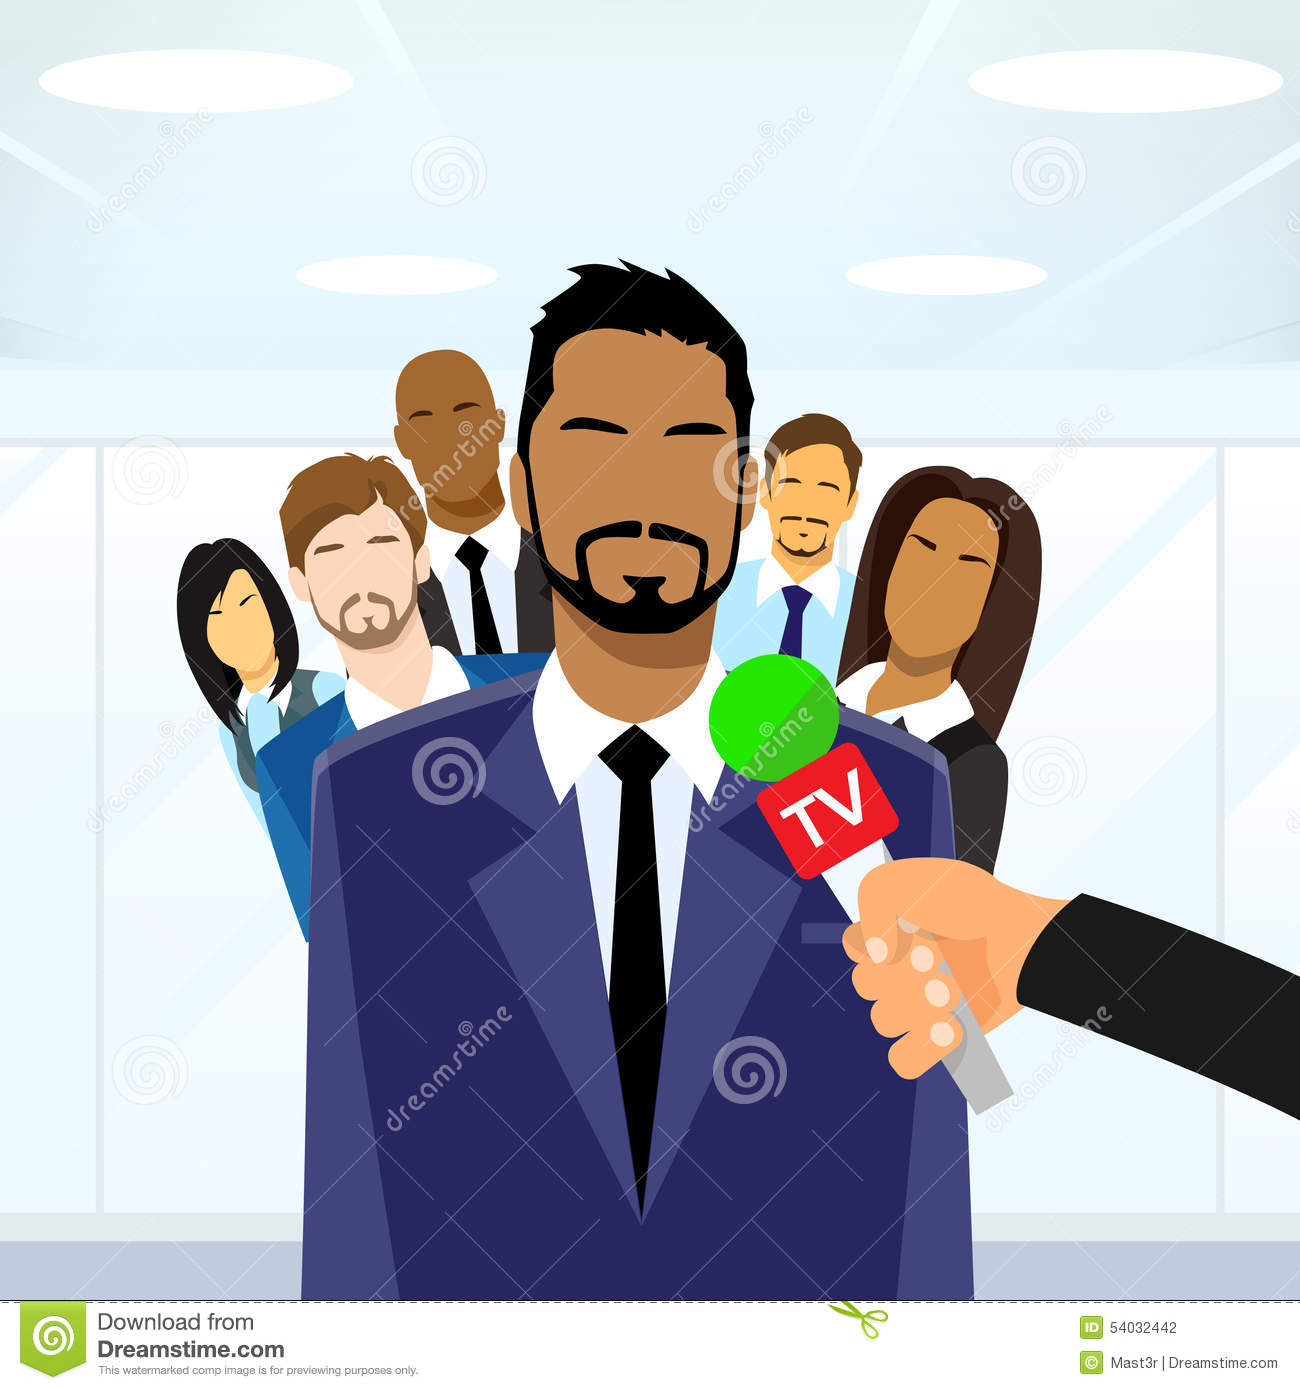 team leader interview presentation Show off your team leadership with powerful presentation  will need to make a presentation to the leadership team on your  is the presentation.